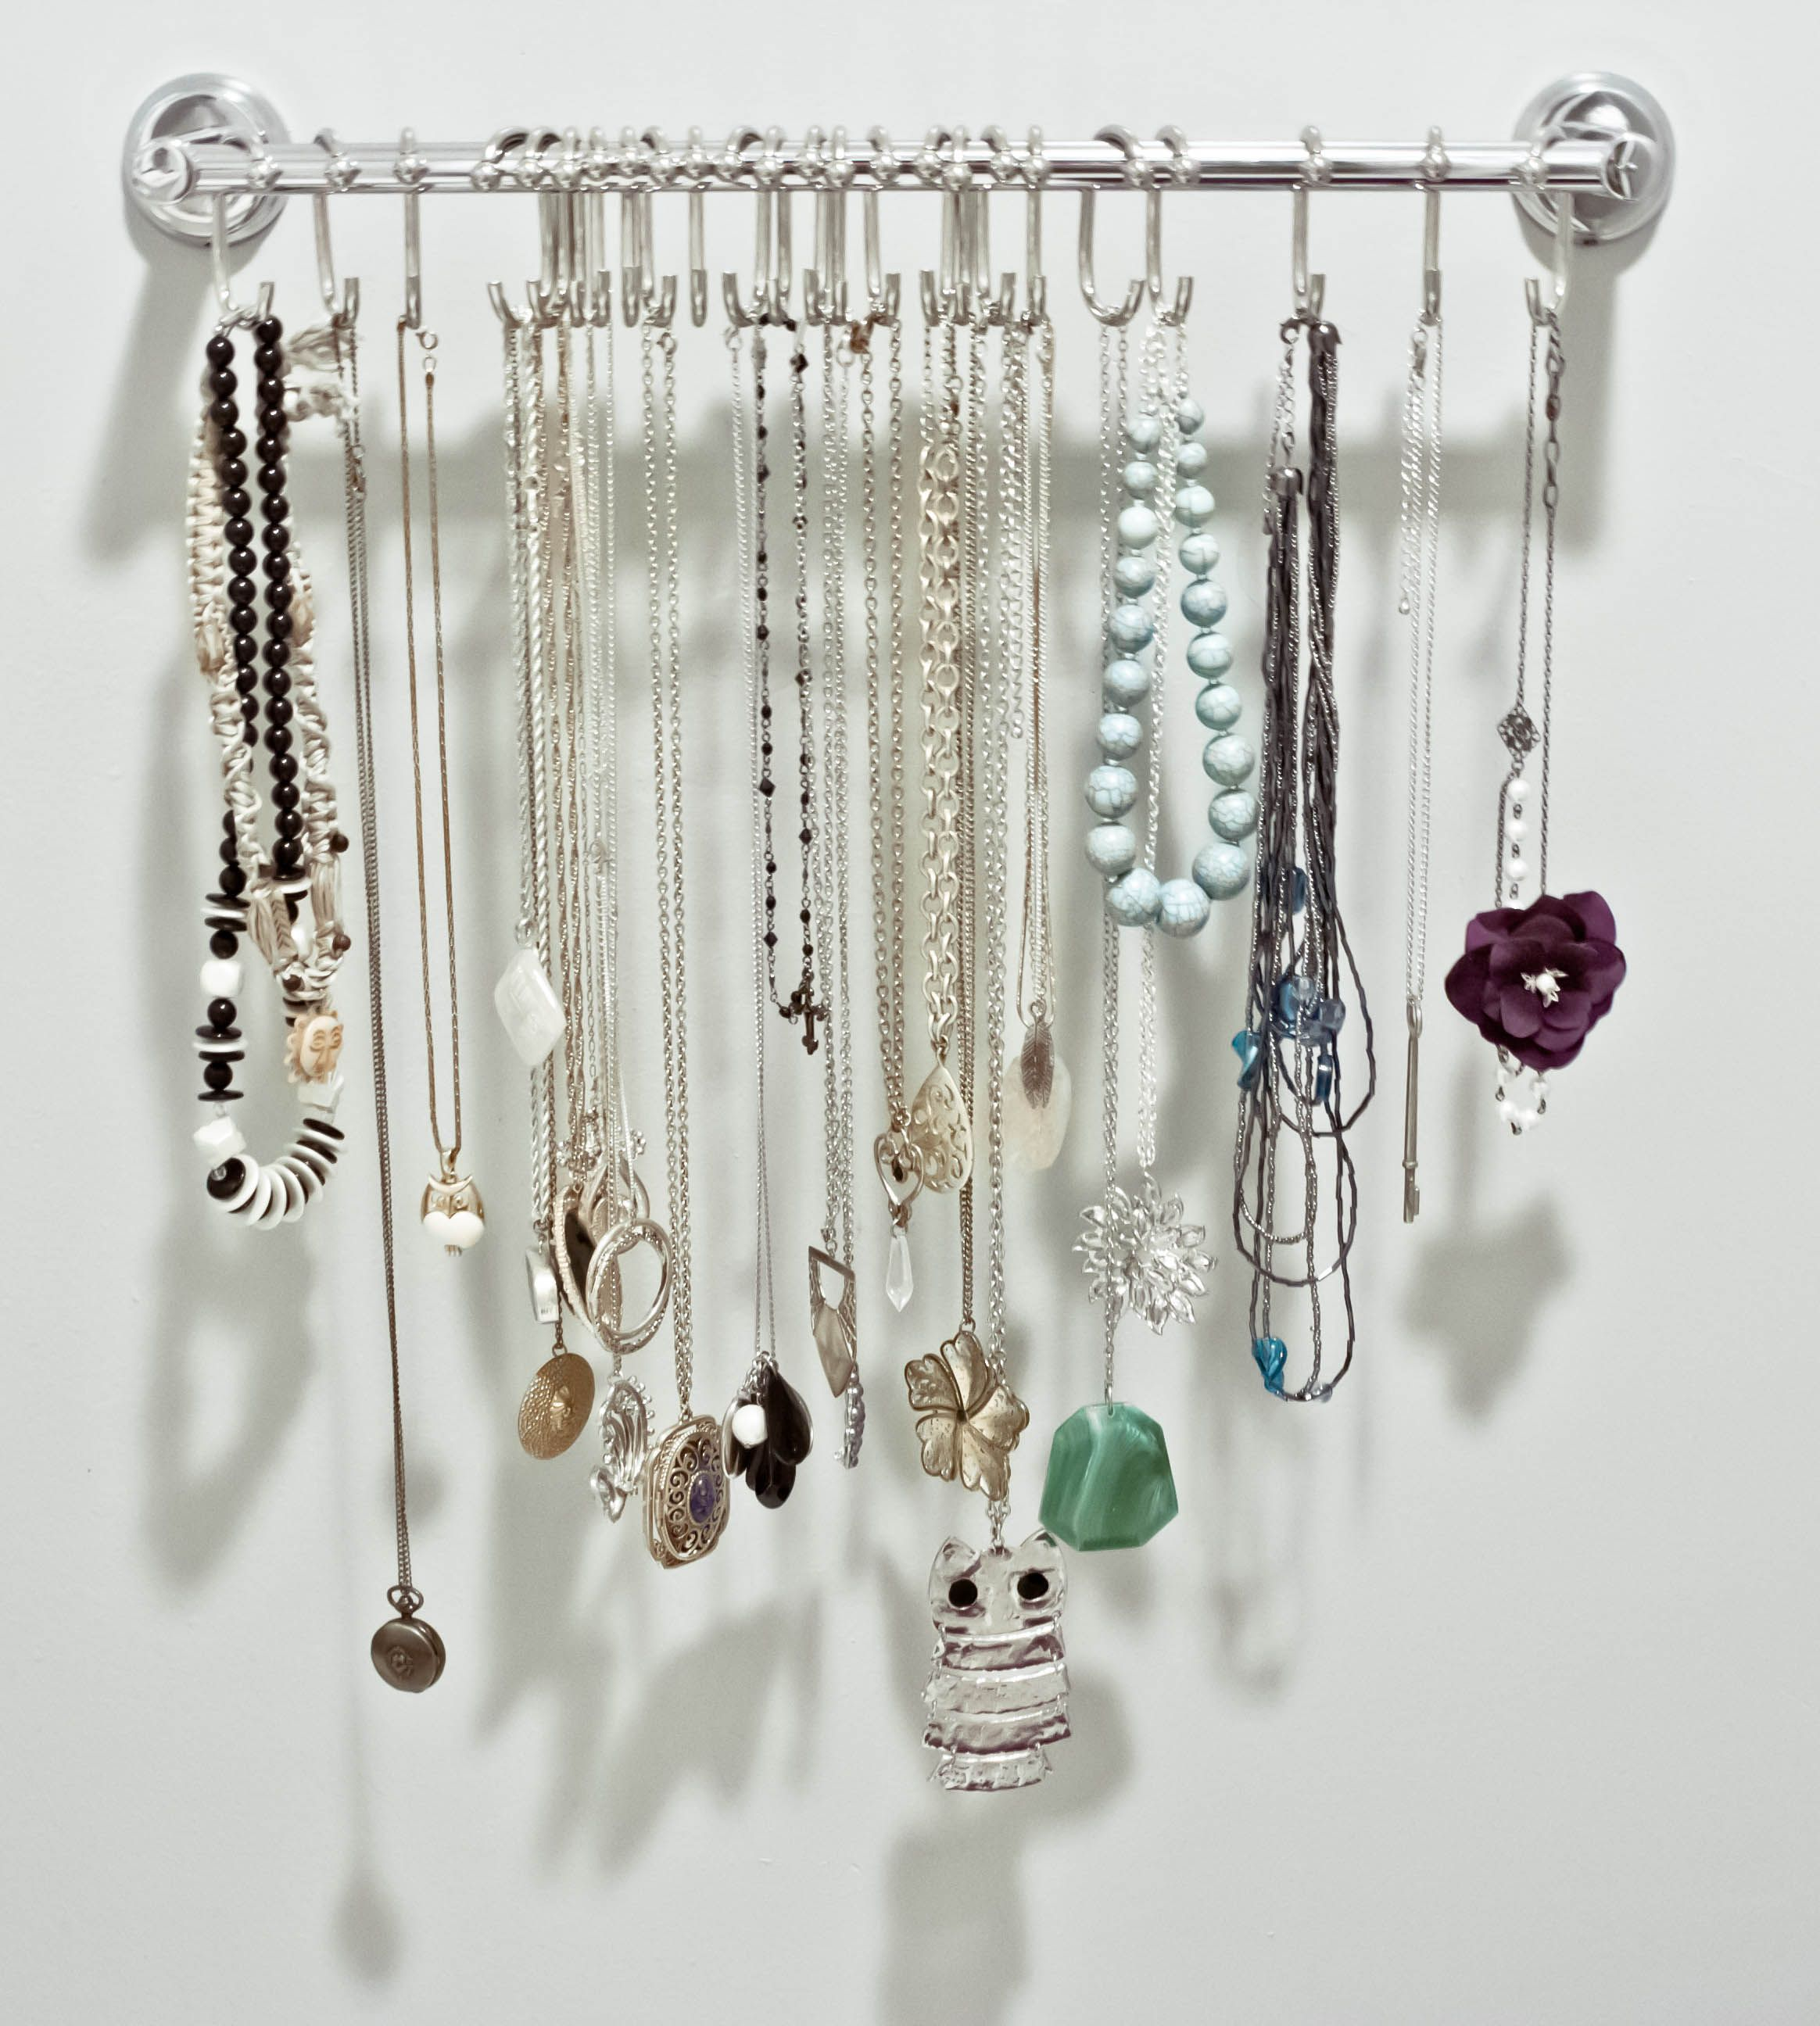 Diy Necklace Holder Jewelry Organizer Diy Jewelry Organizer Organizations And